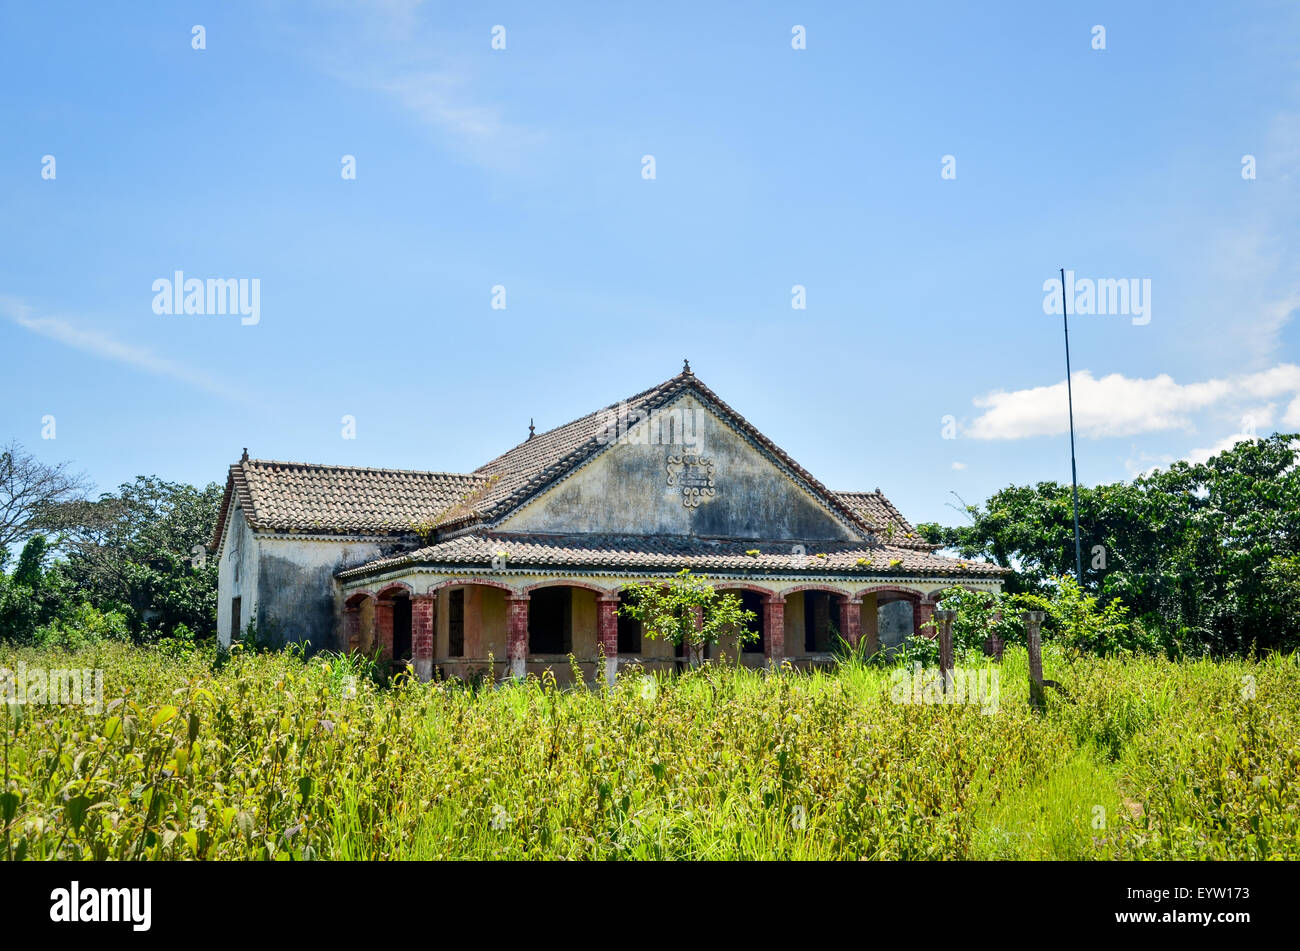 Ruins of a colonial large house in rural Angola (Monserrate, Cuanza Norte) - Stock Image